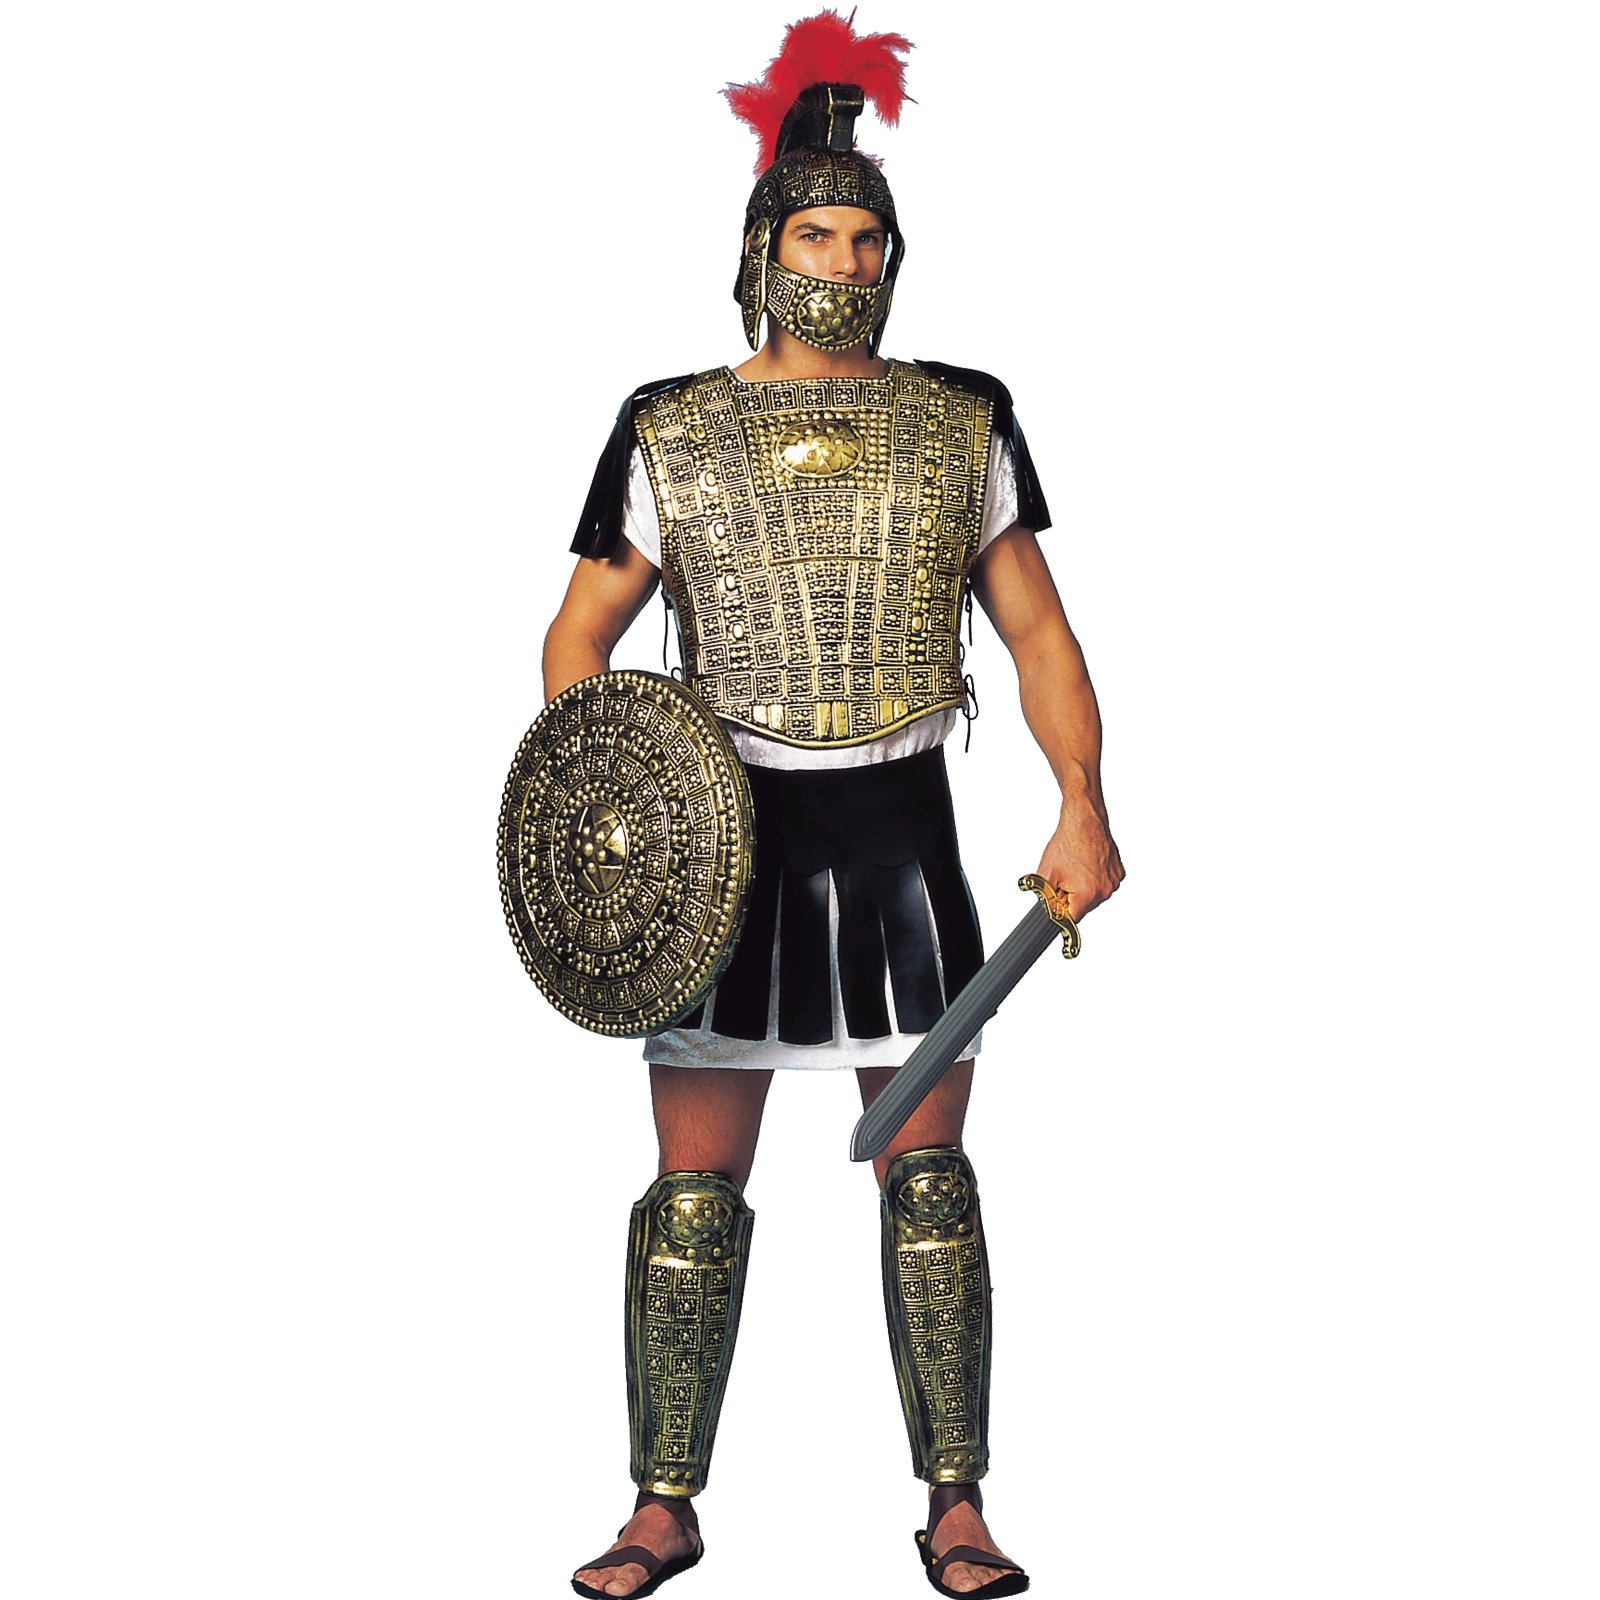 Free Files Roman Soldier image #14624